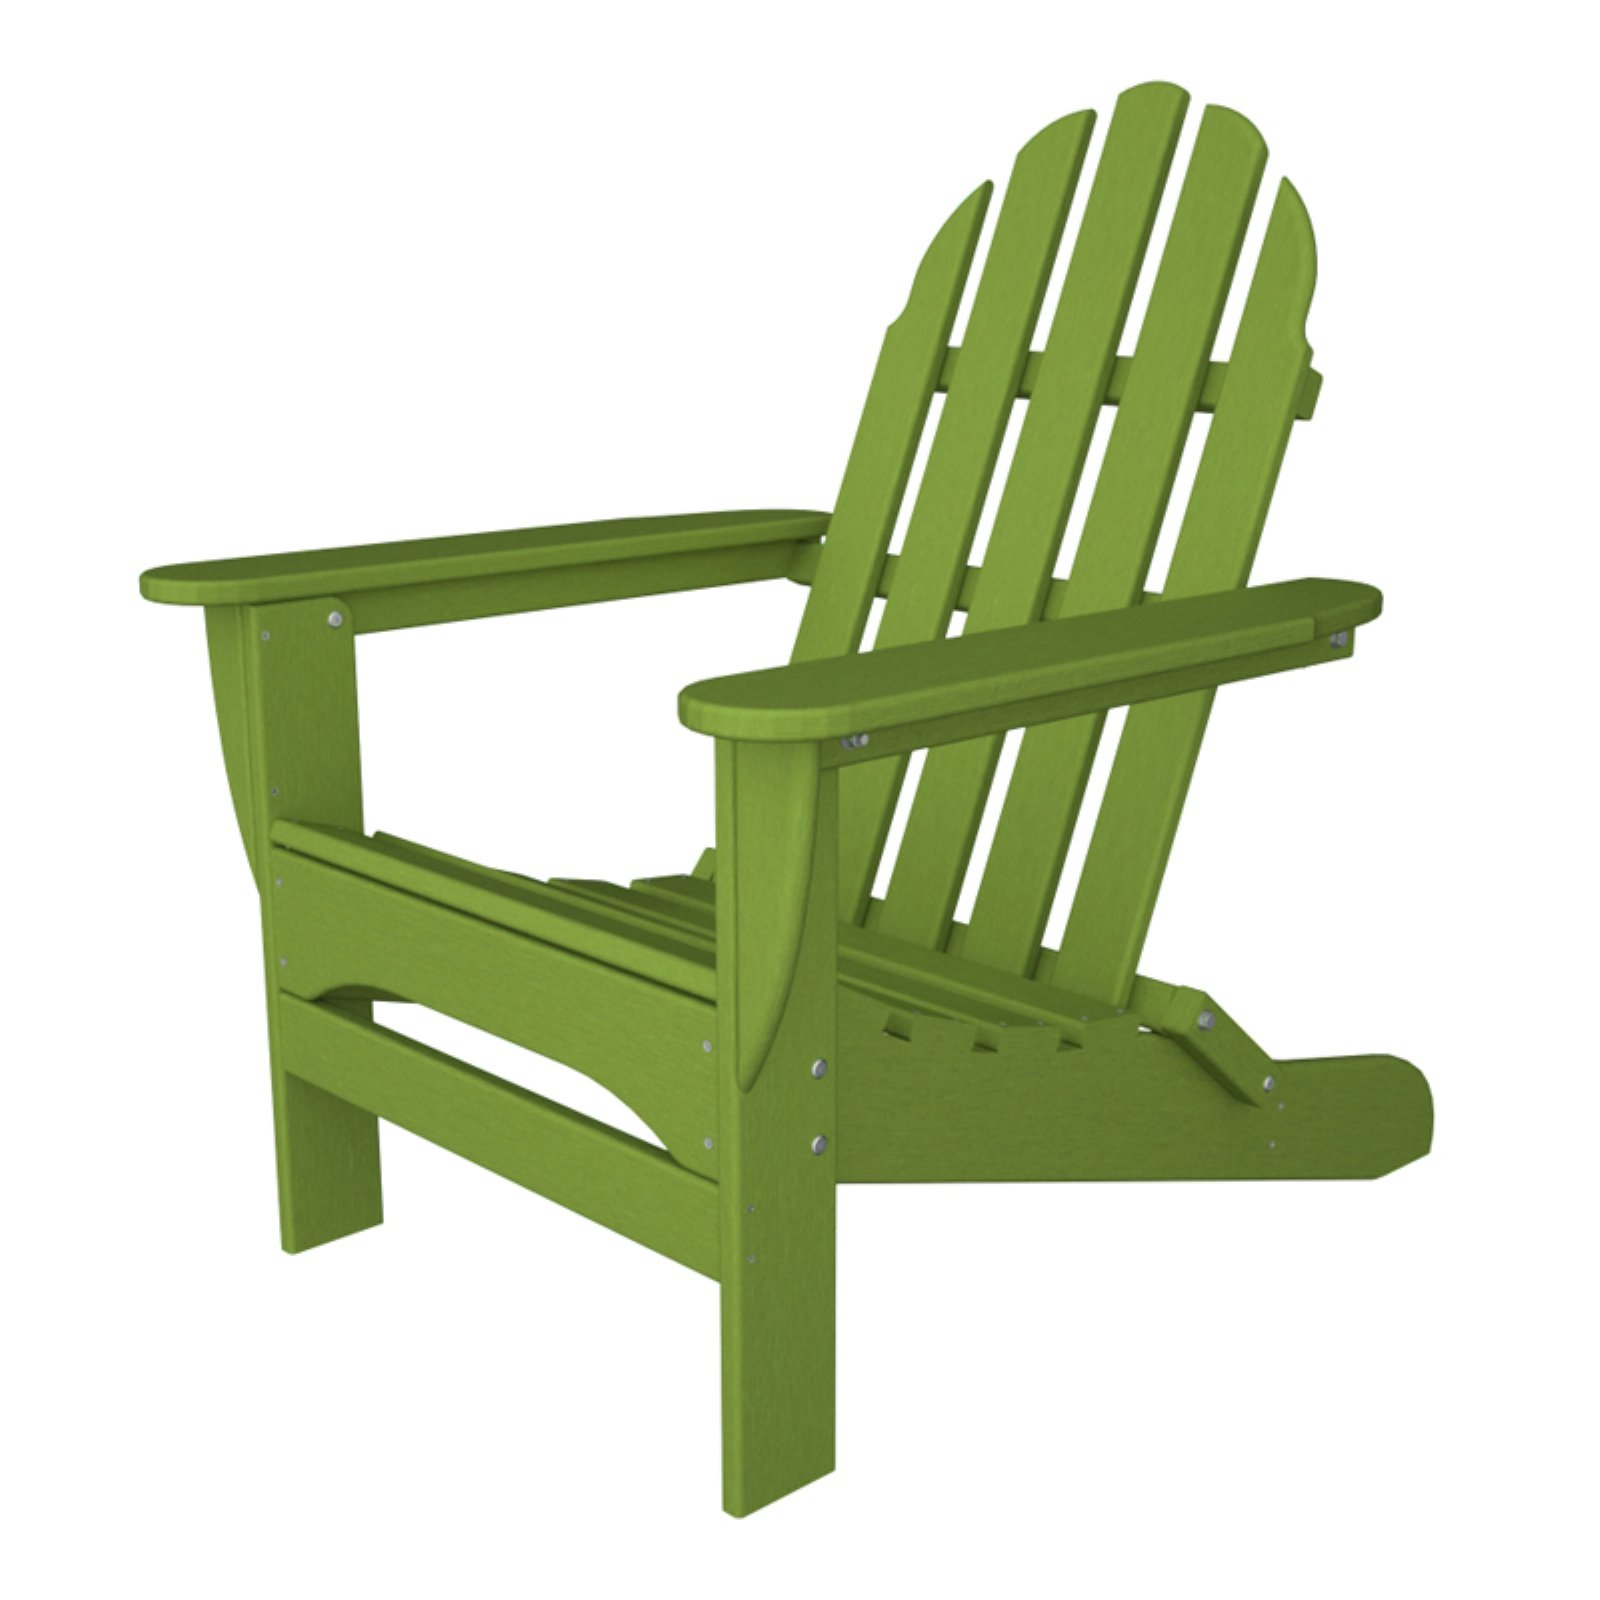 POLYWOOD Classic Recycled Plastic Foldable Adirondack Chair by Polywood